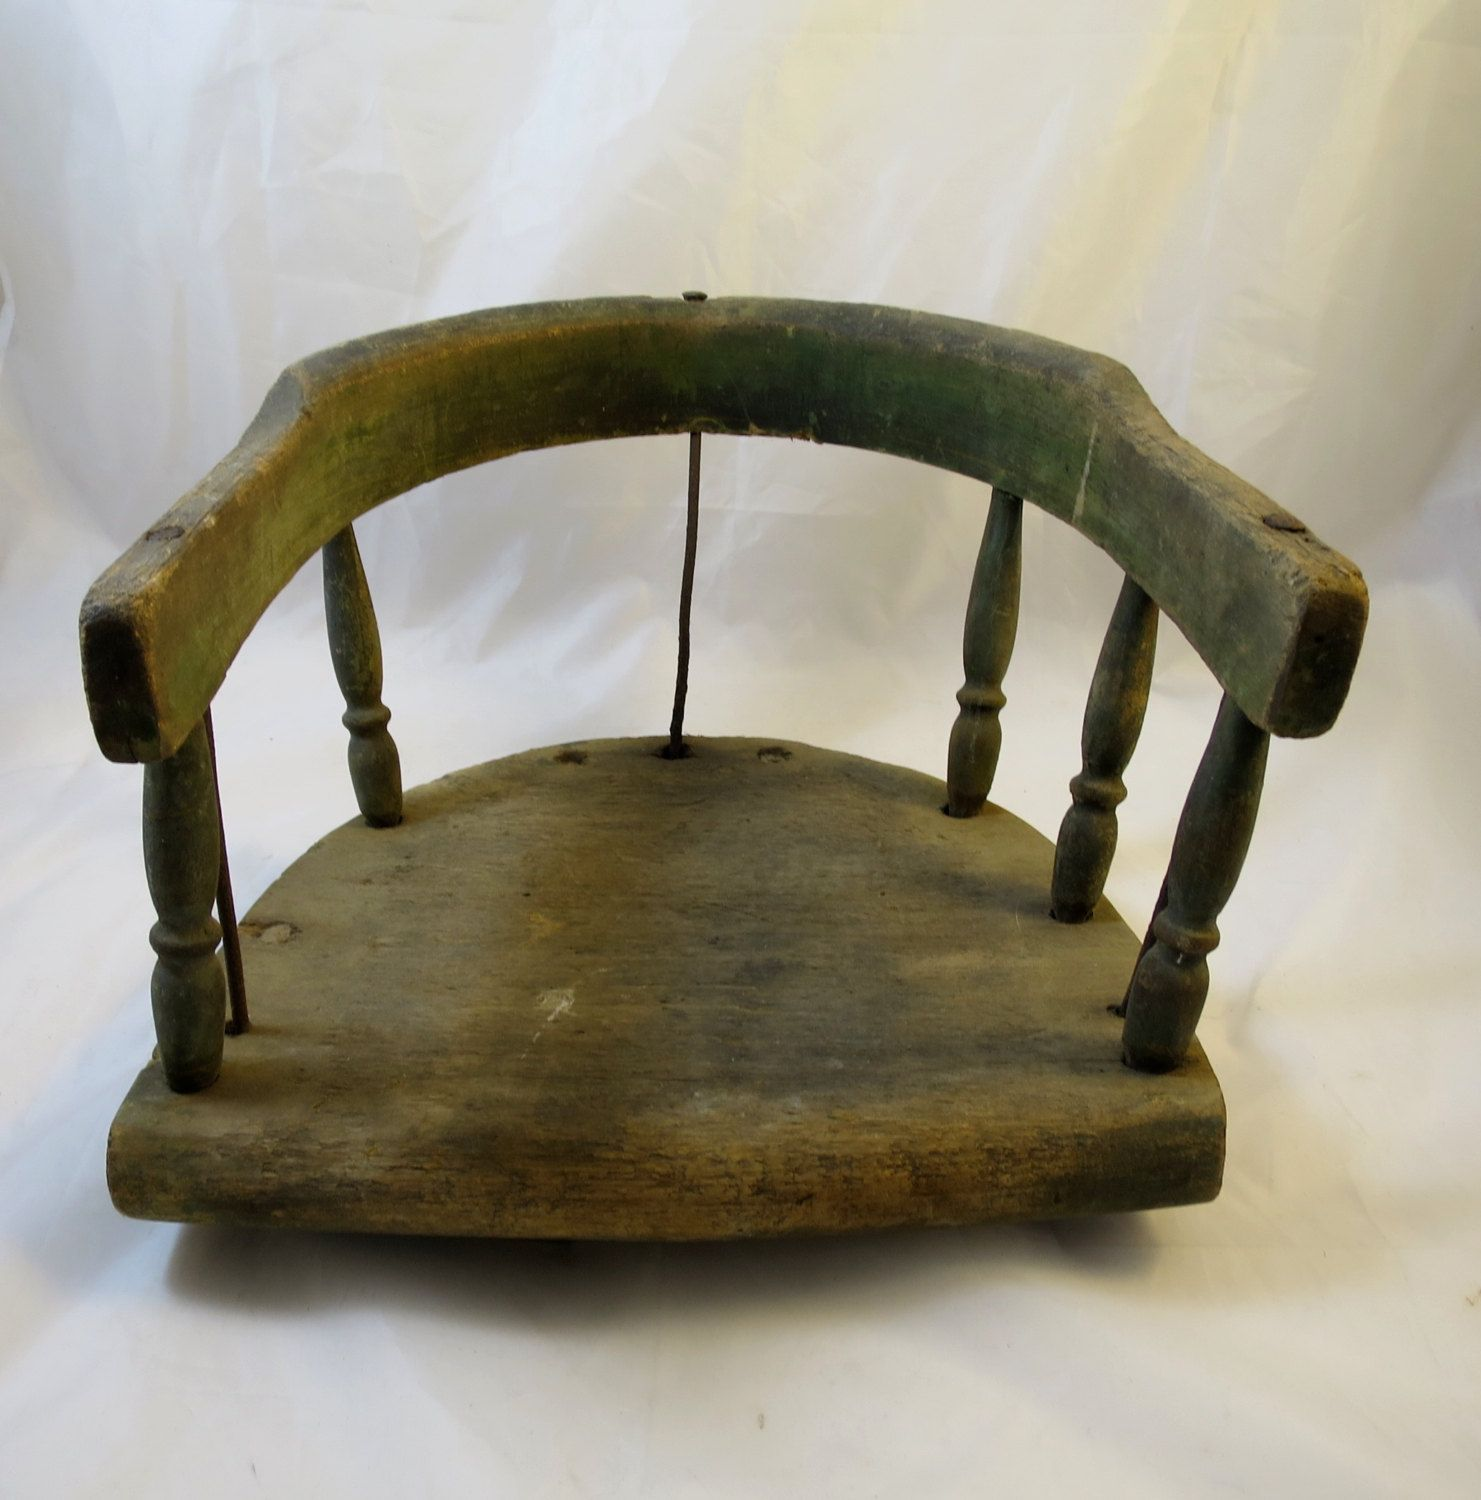 Antique Childs Chair Seat Windsor Style Spokes Metal Rods